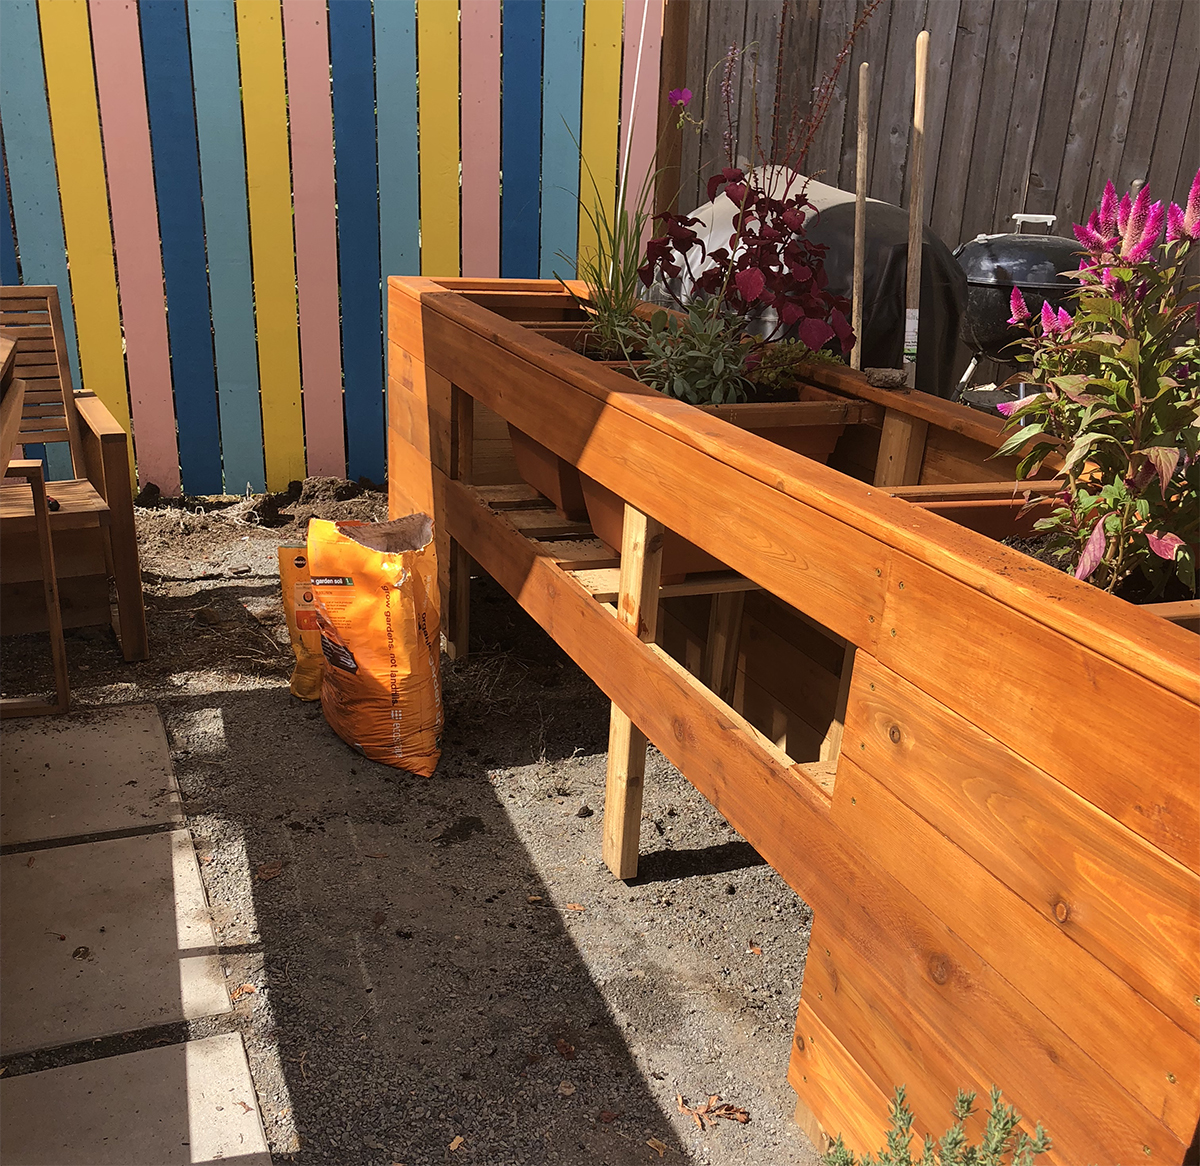 How to Incorporate Hidden Storage in the Backyard